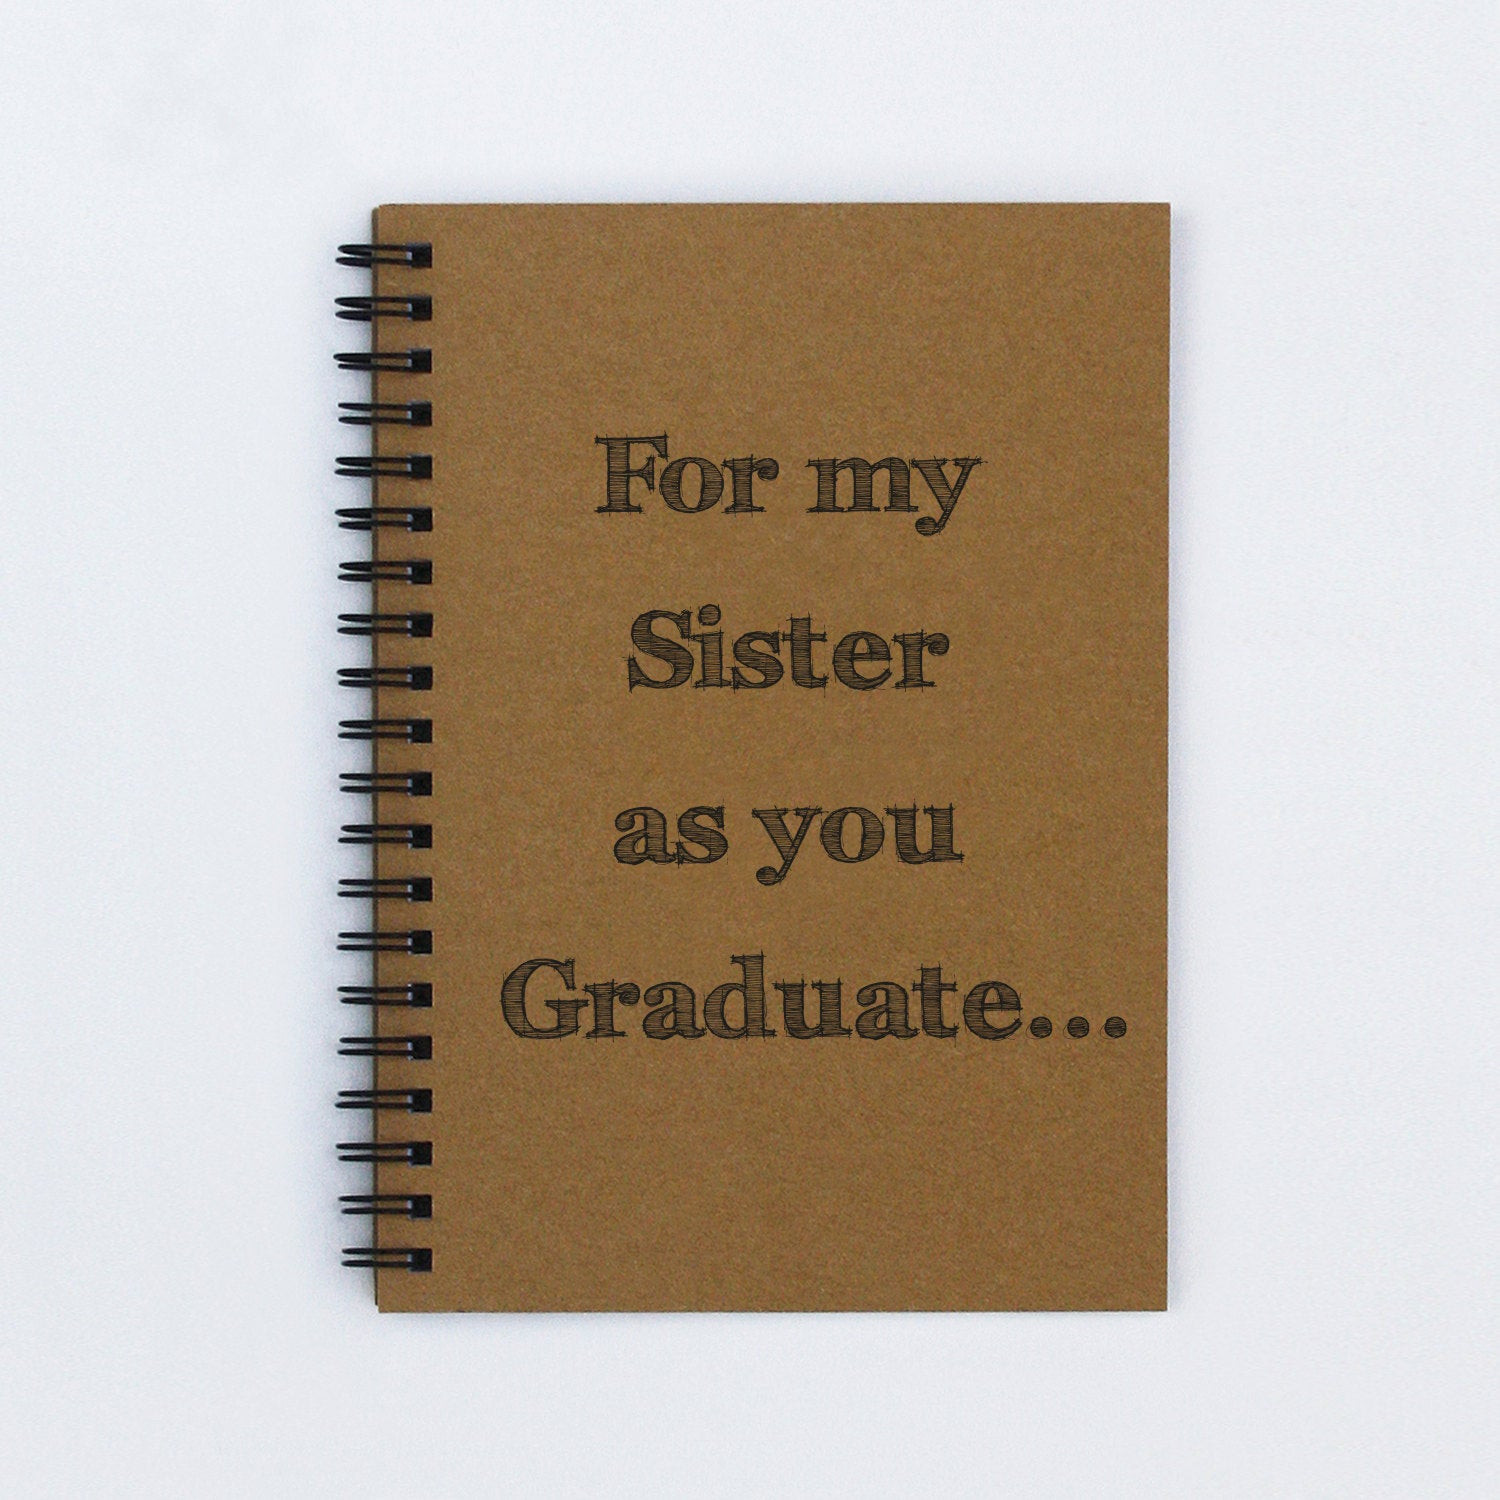 Best ideas about Graduation Gift Ideas For Sister . Save or Pin Graduation t for sister For my Sister by Now.